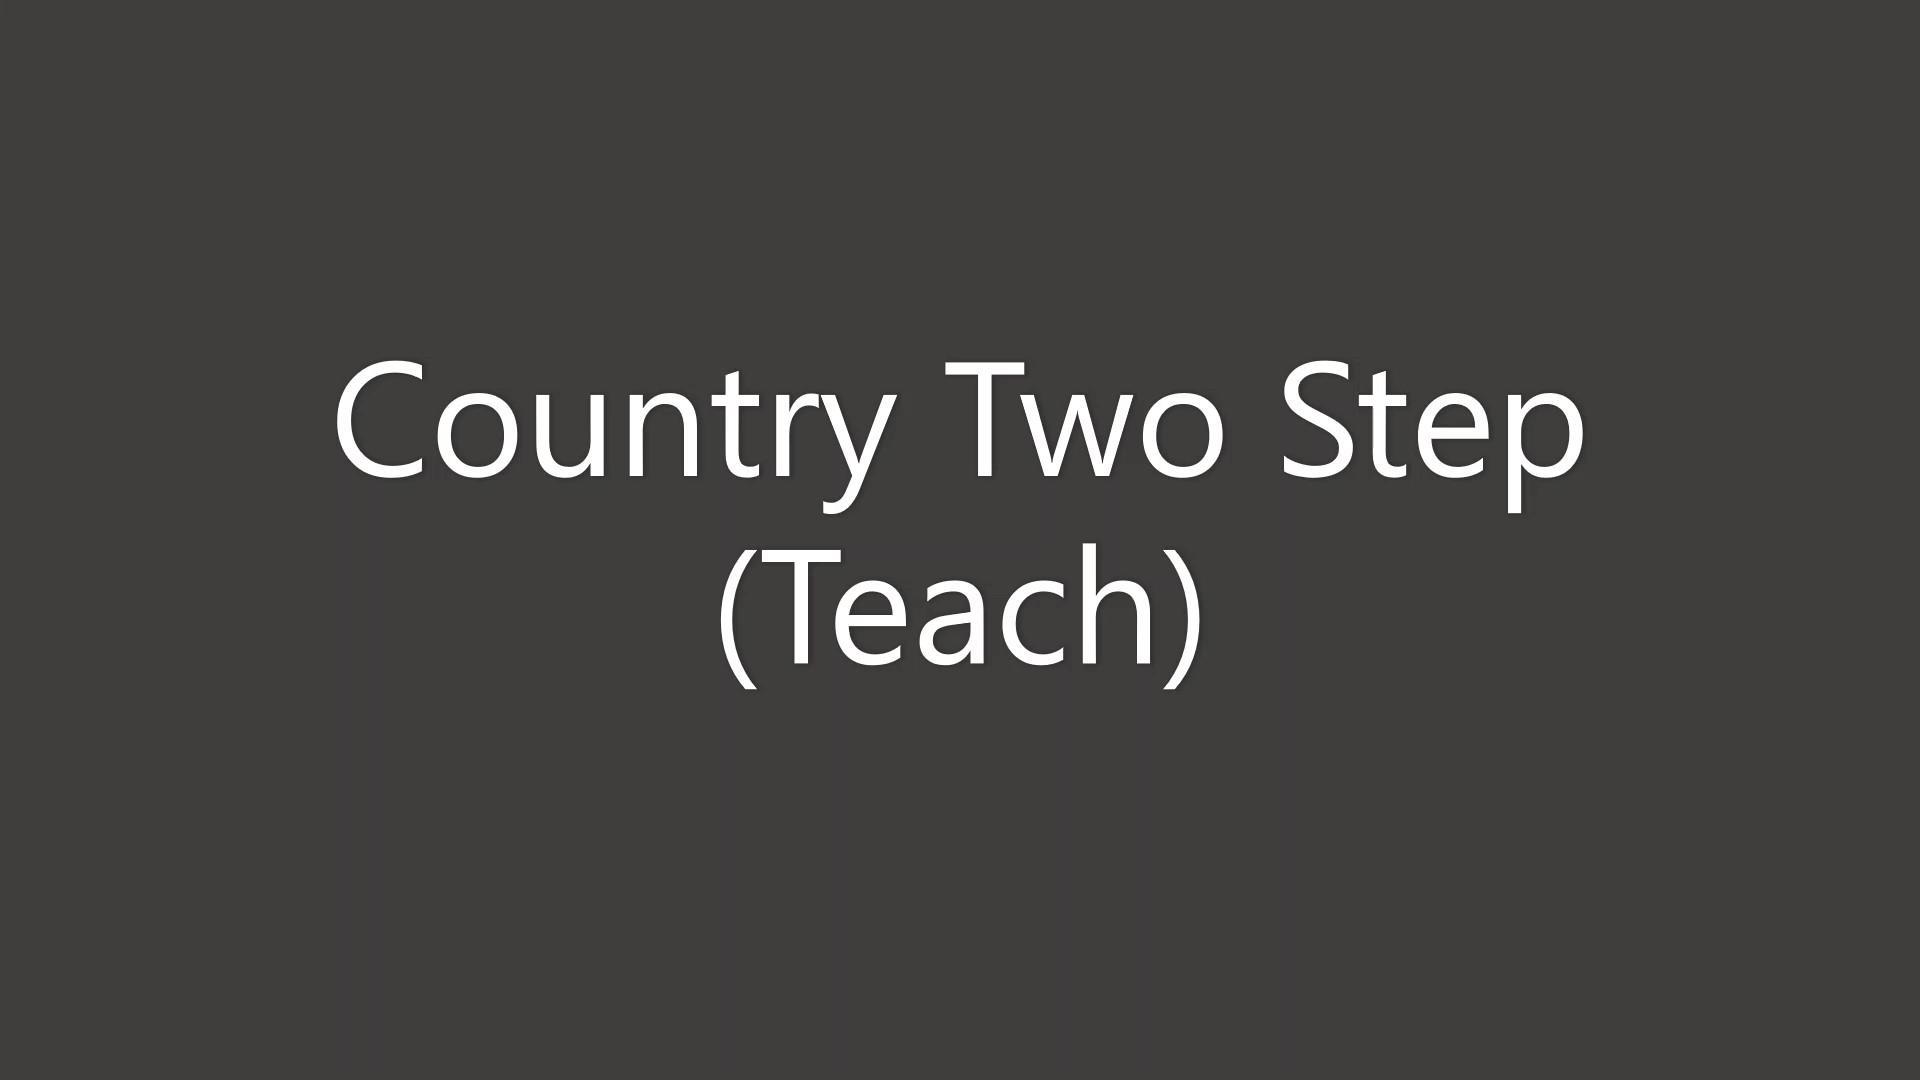 Country Two Step Teach